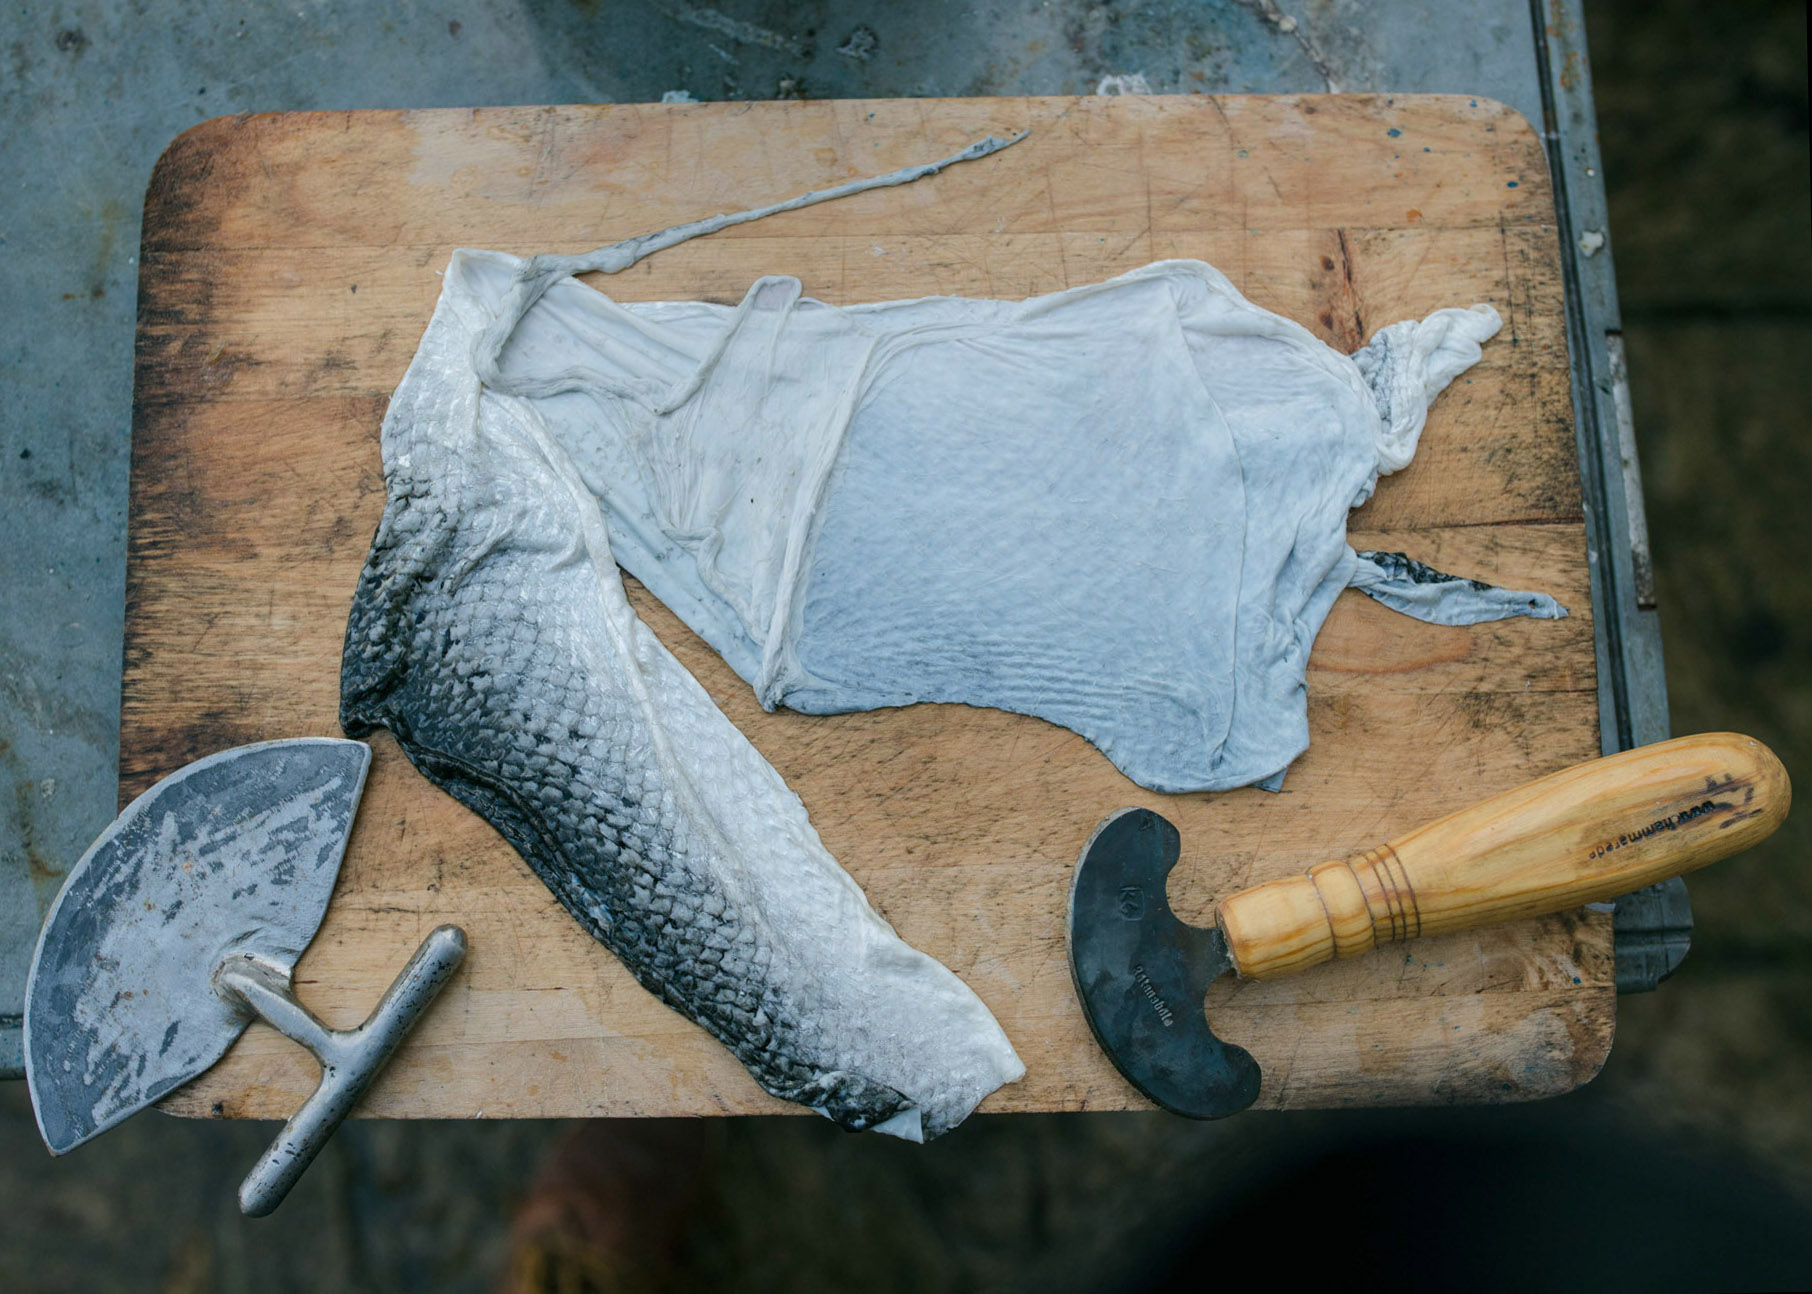 Artist Kari Furre uses an antique West Country, slate-bladed knife to scrape off the scales, then flips the skin over to pare away the layers of fat and fibres with a sharper curved  metal blade